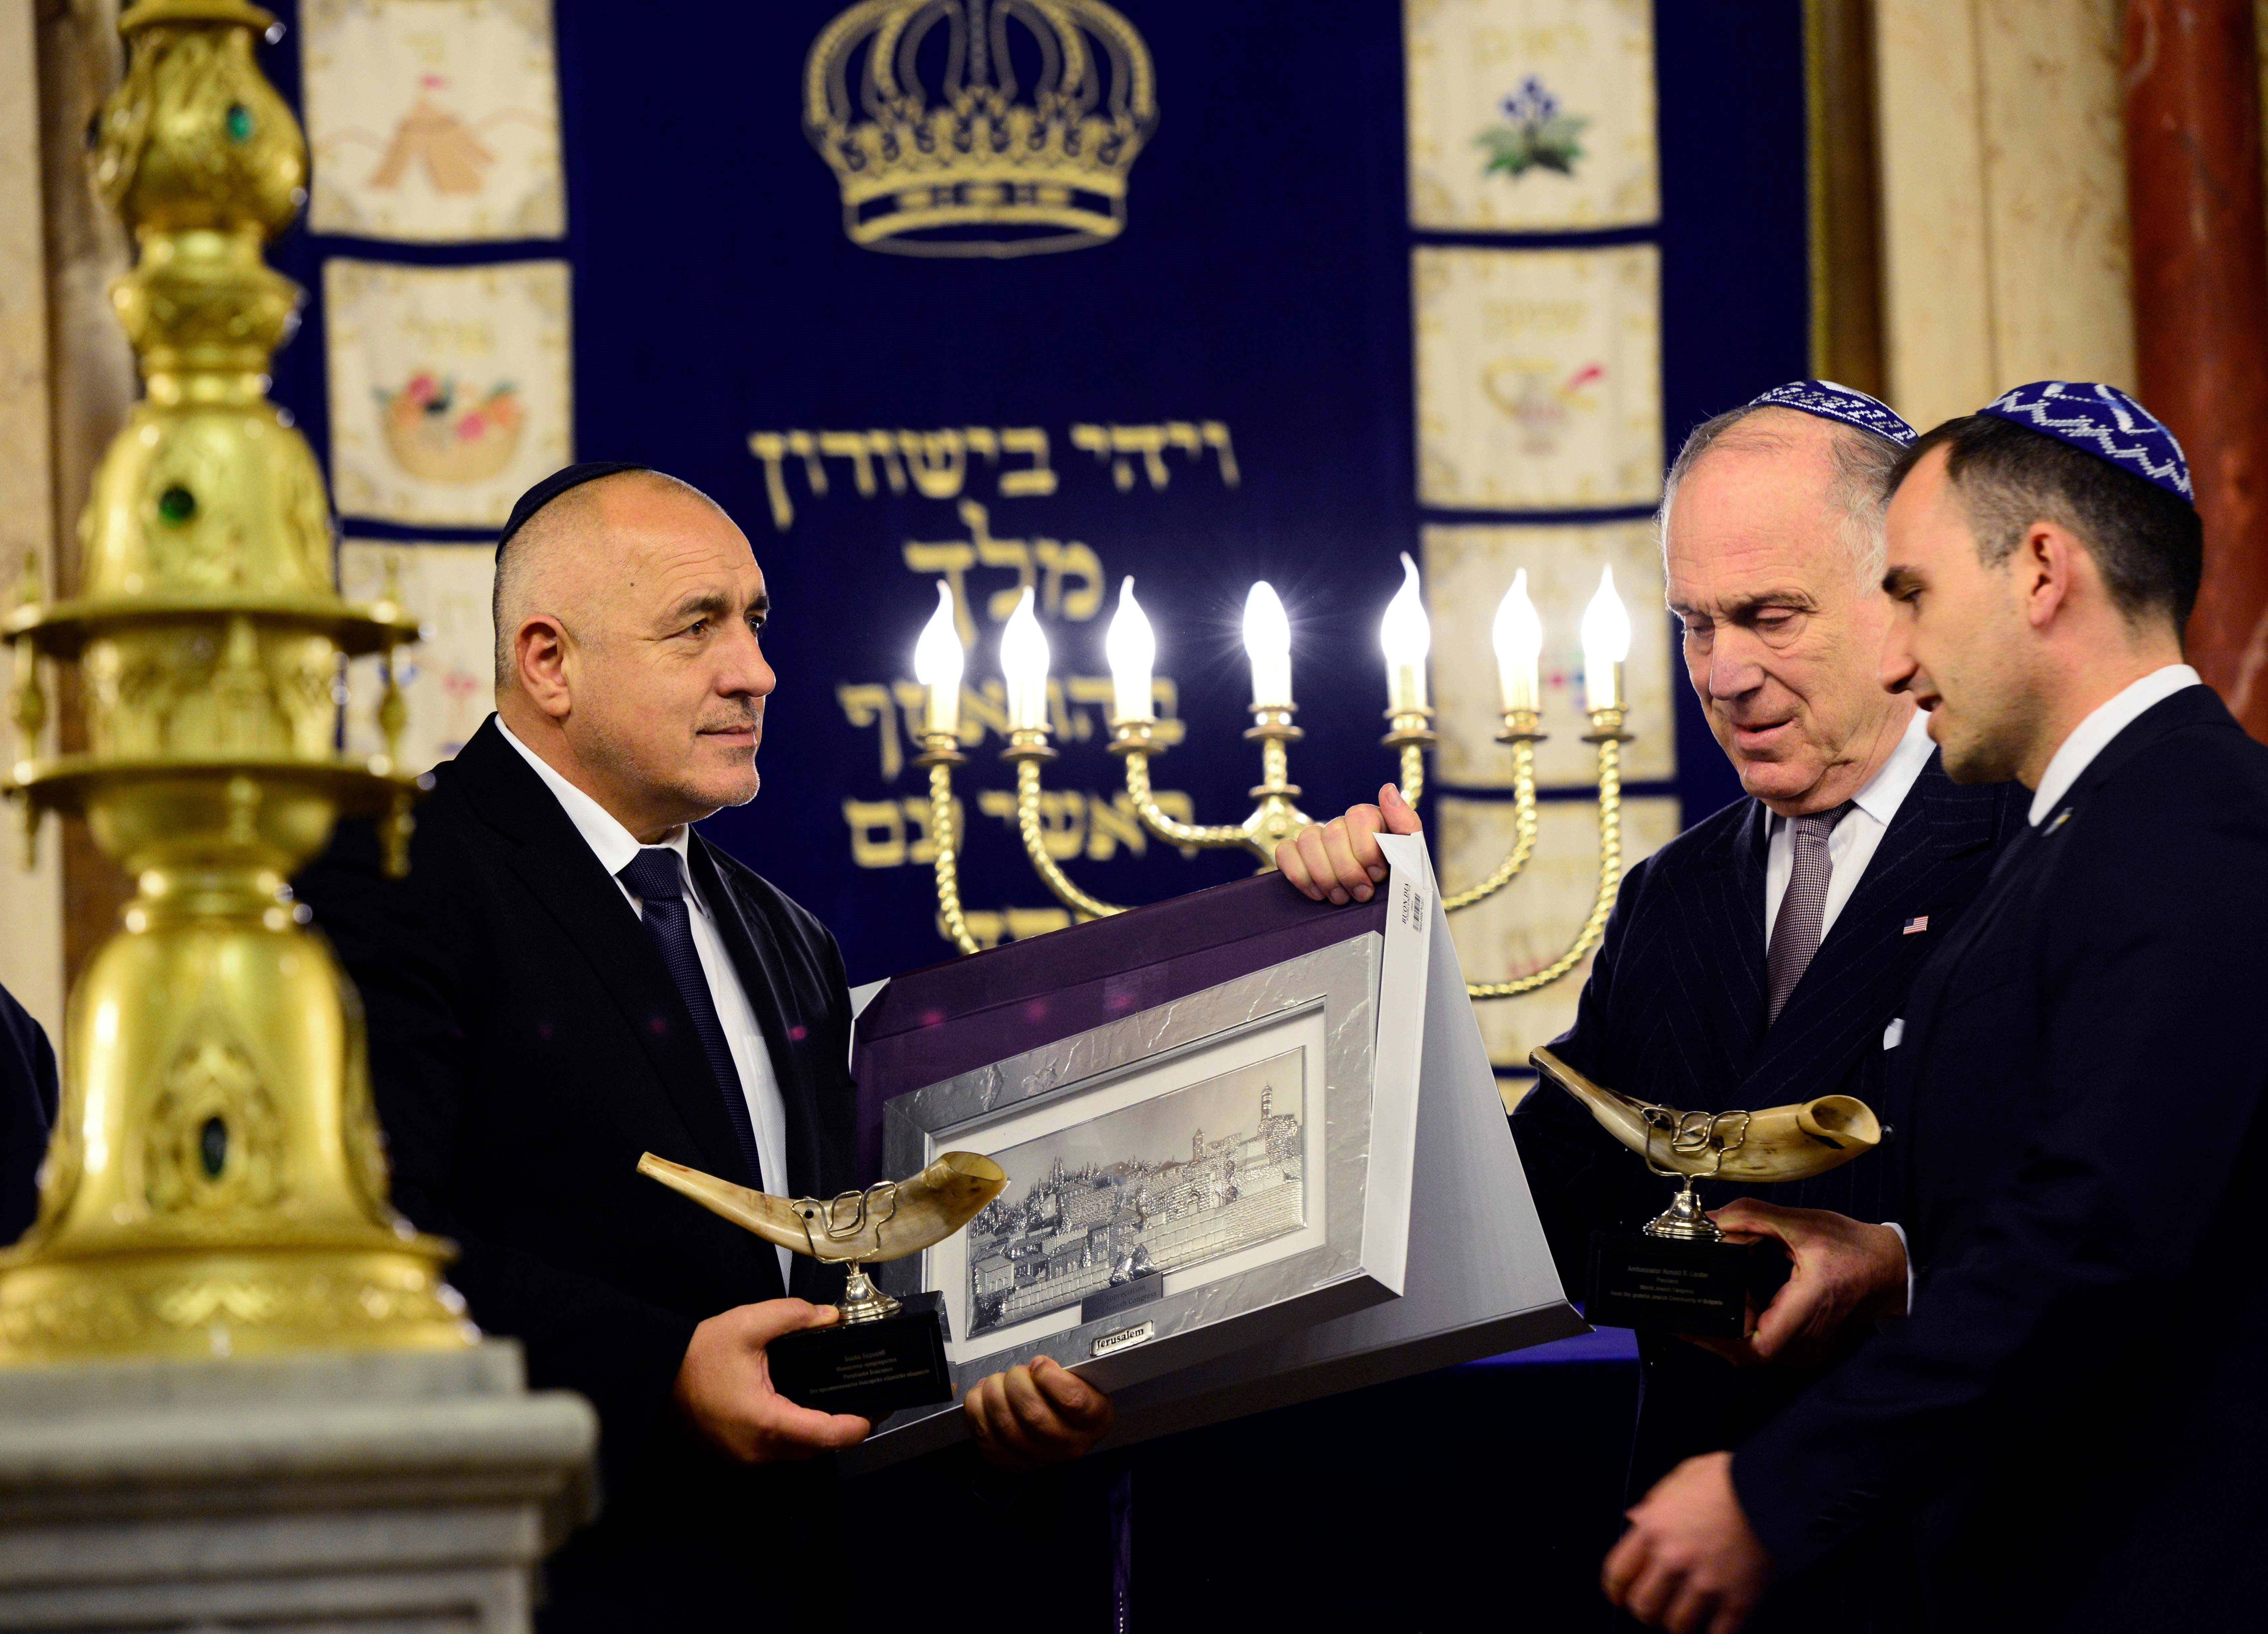 Bulgarian Prime Minister Boyko Borisov, World Jewish Congress President Ronald S. Lauder, and President of the Organisation of Jews in Bulgaria 'Shalom' (Credit: Solomon Frances)